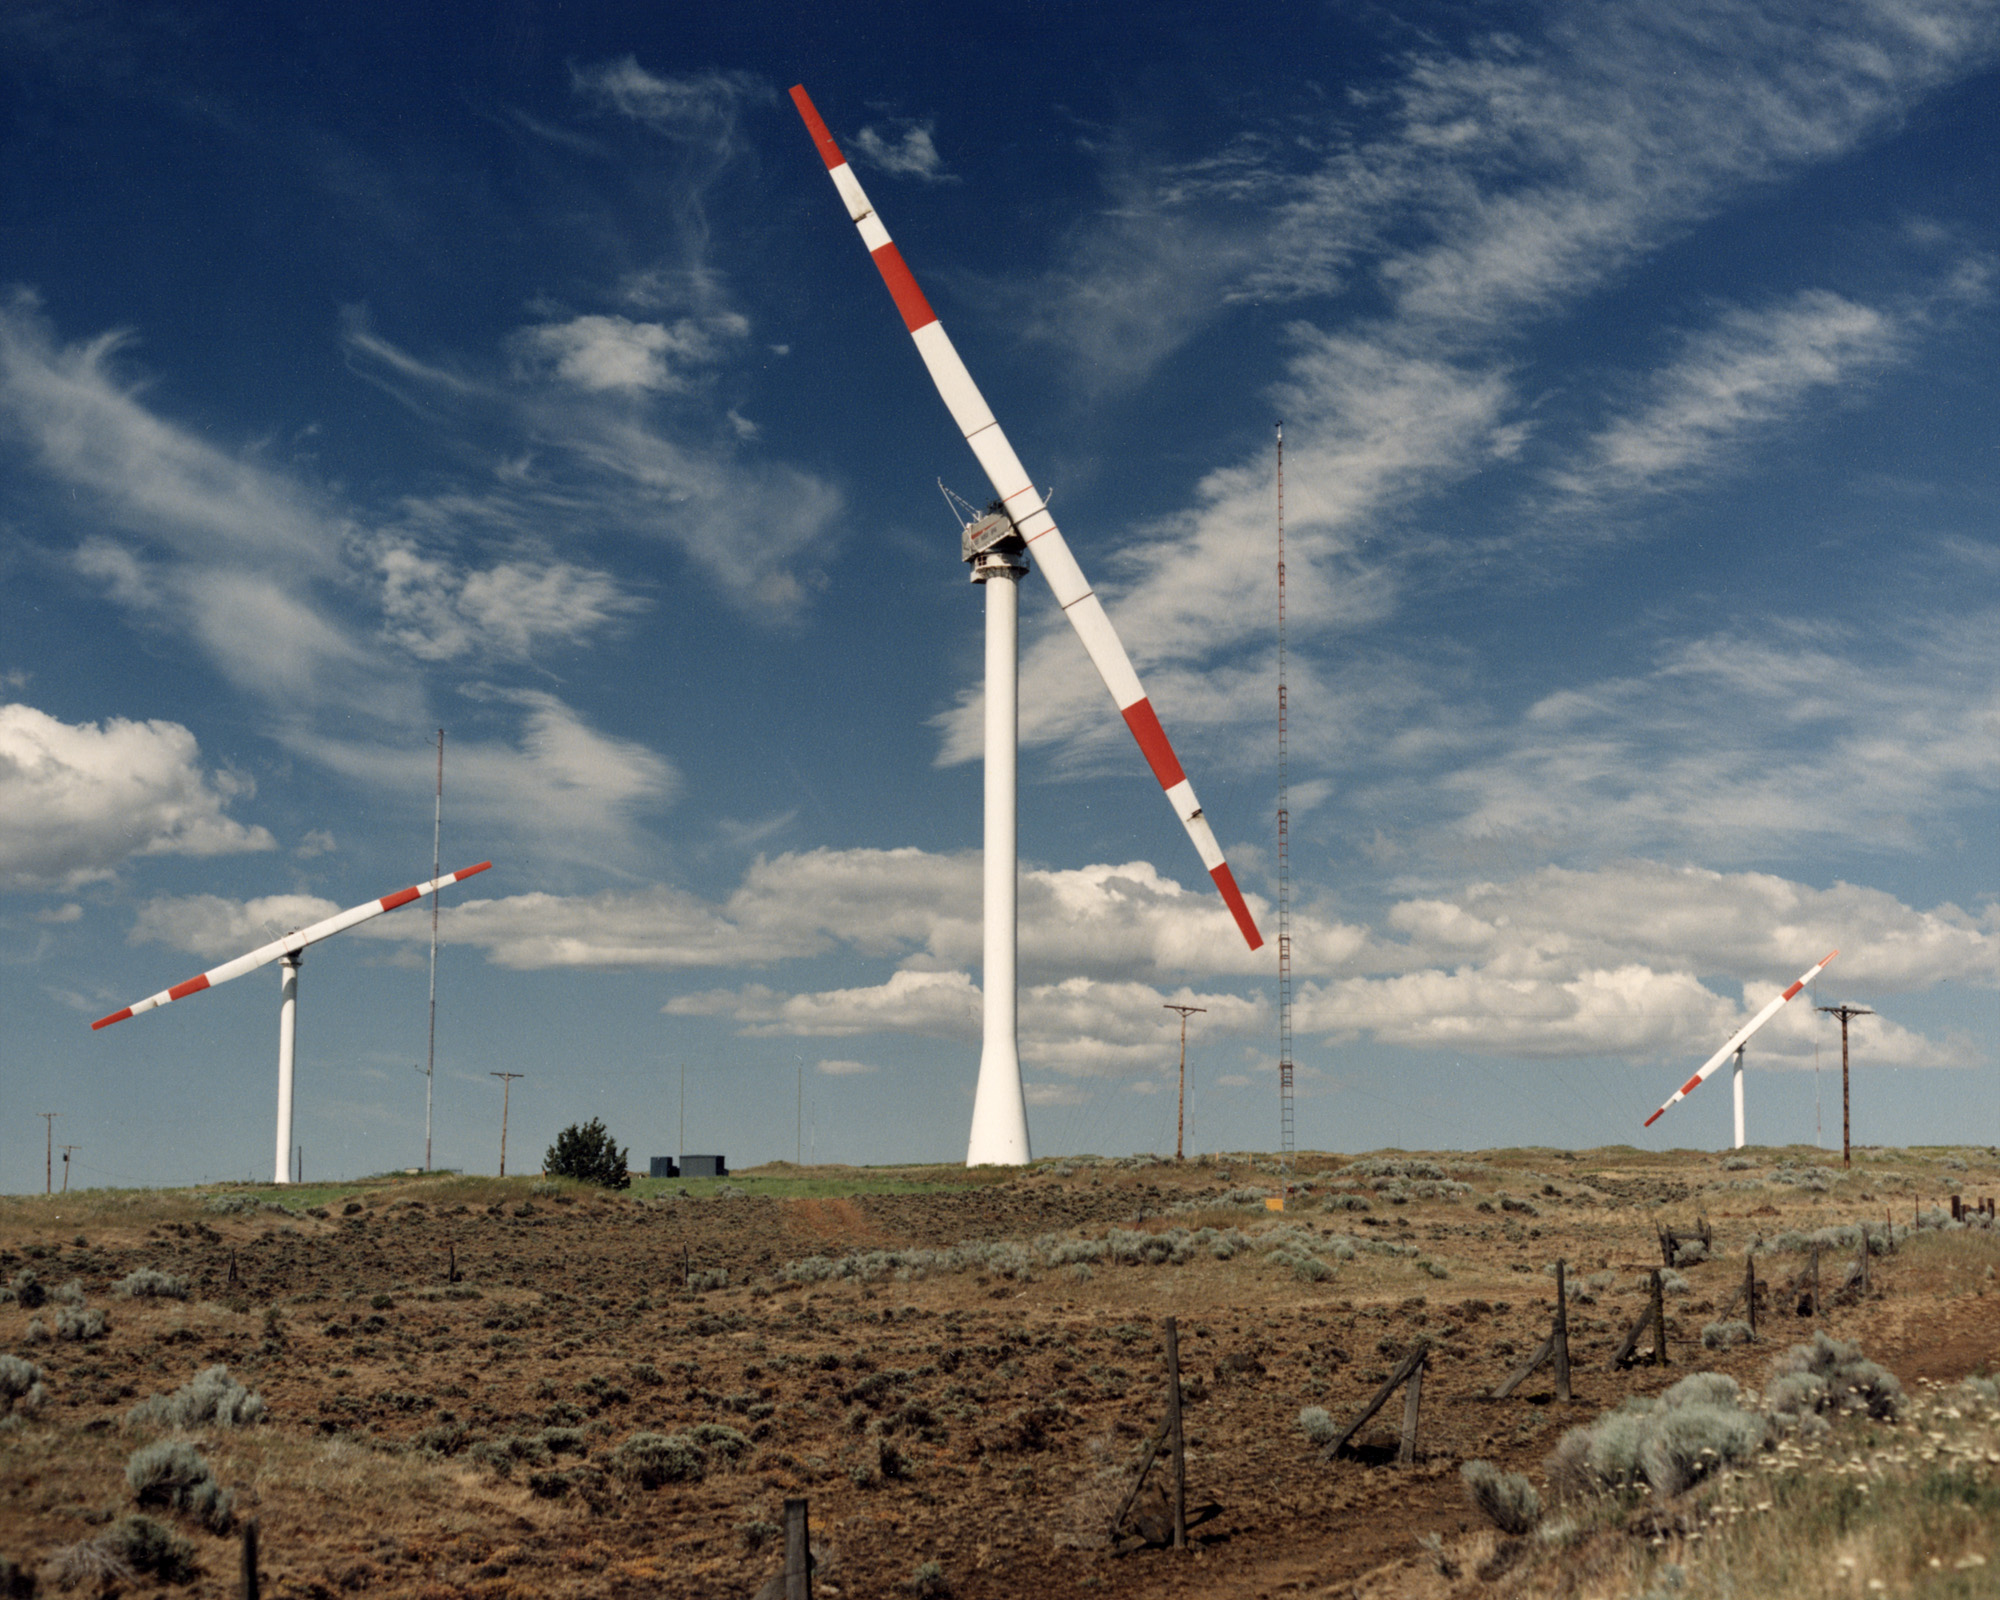 hight resolution of the experimental mod 2 cluster of wind turbines in washington state that provided a crucial early boost to wind power research in the 1980s